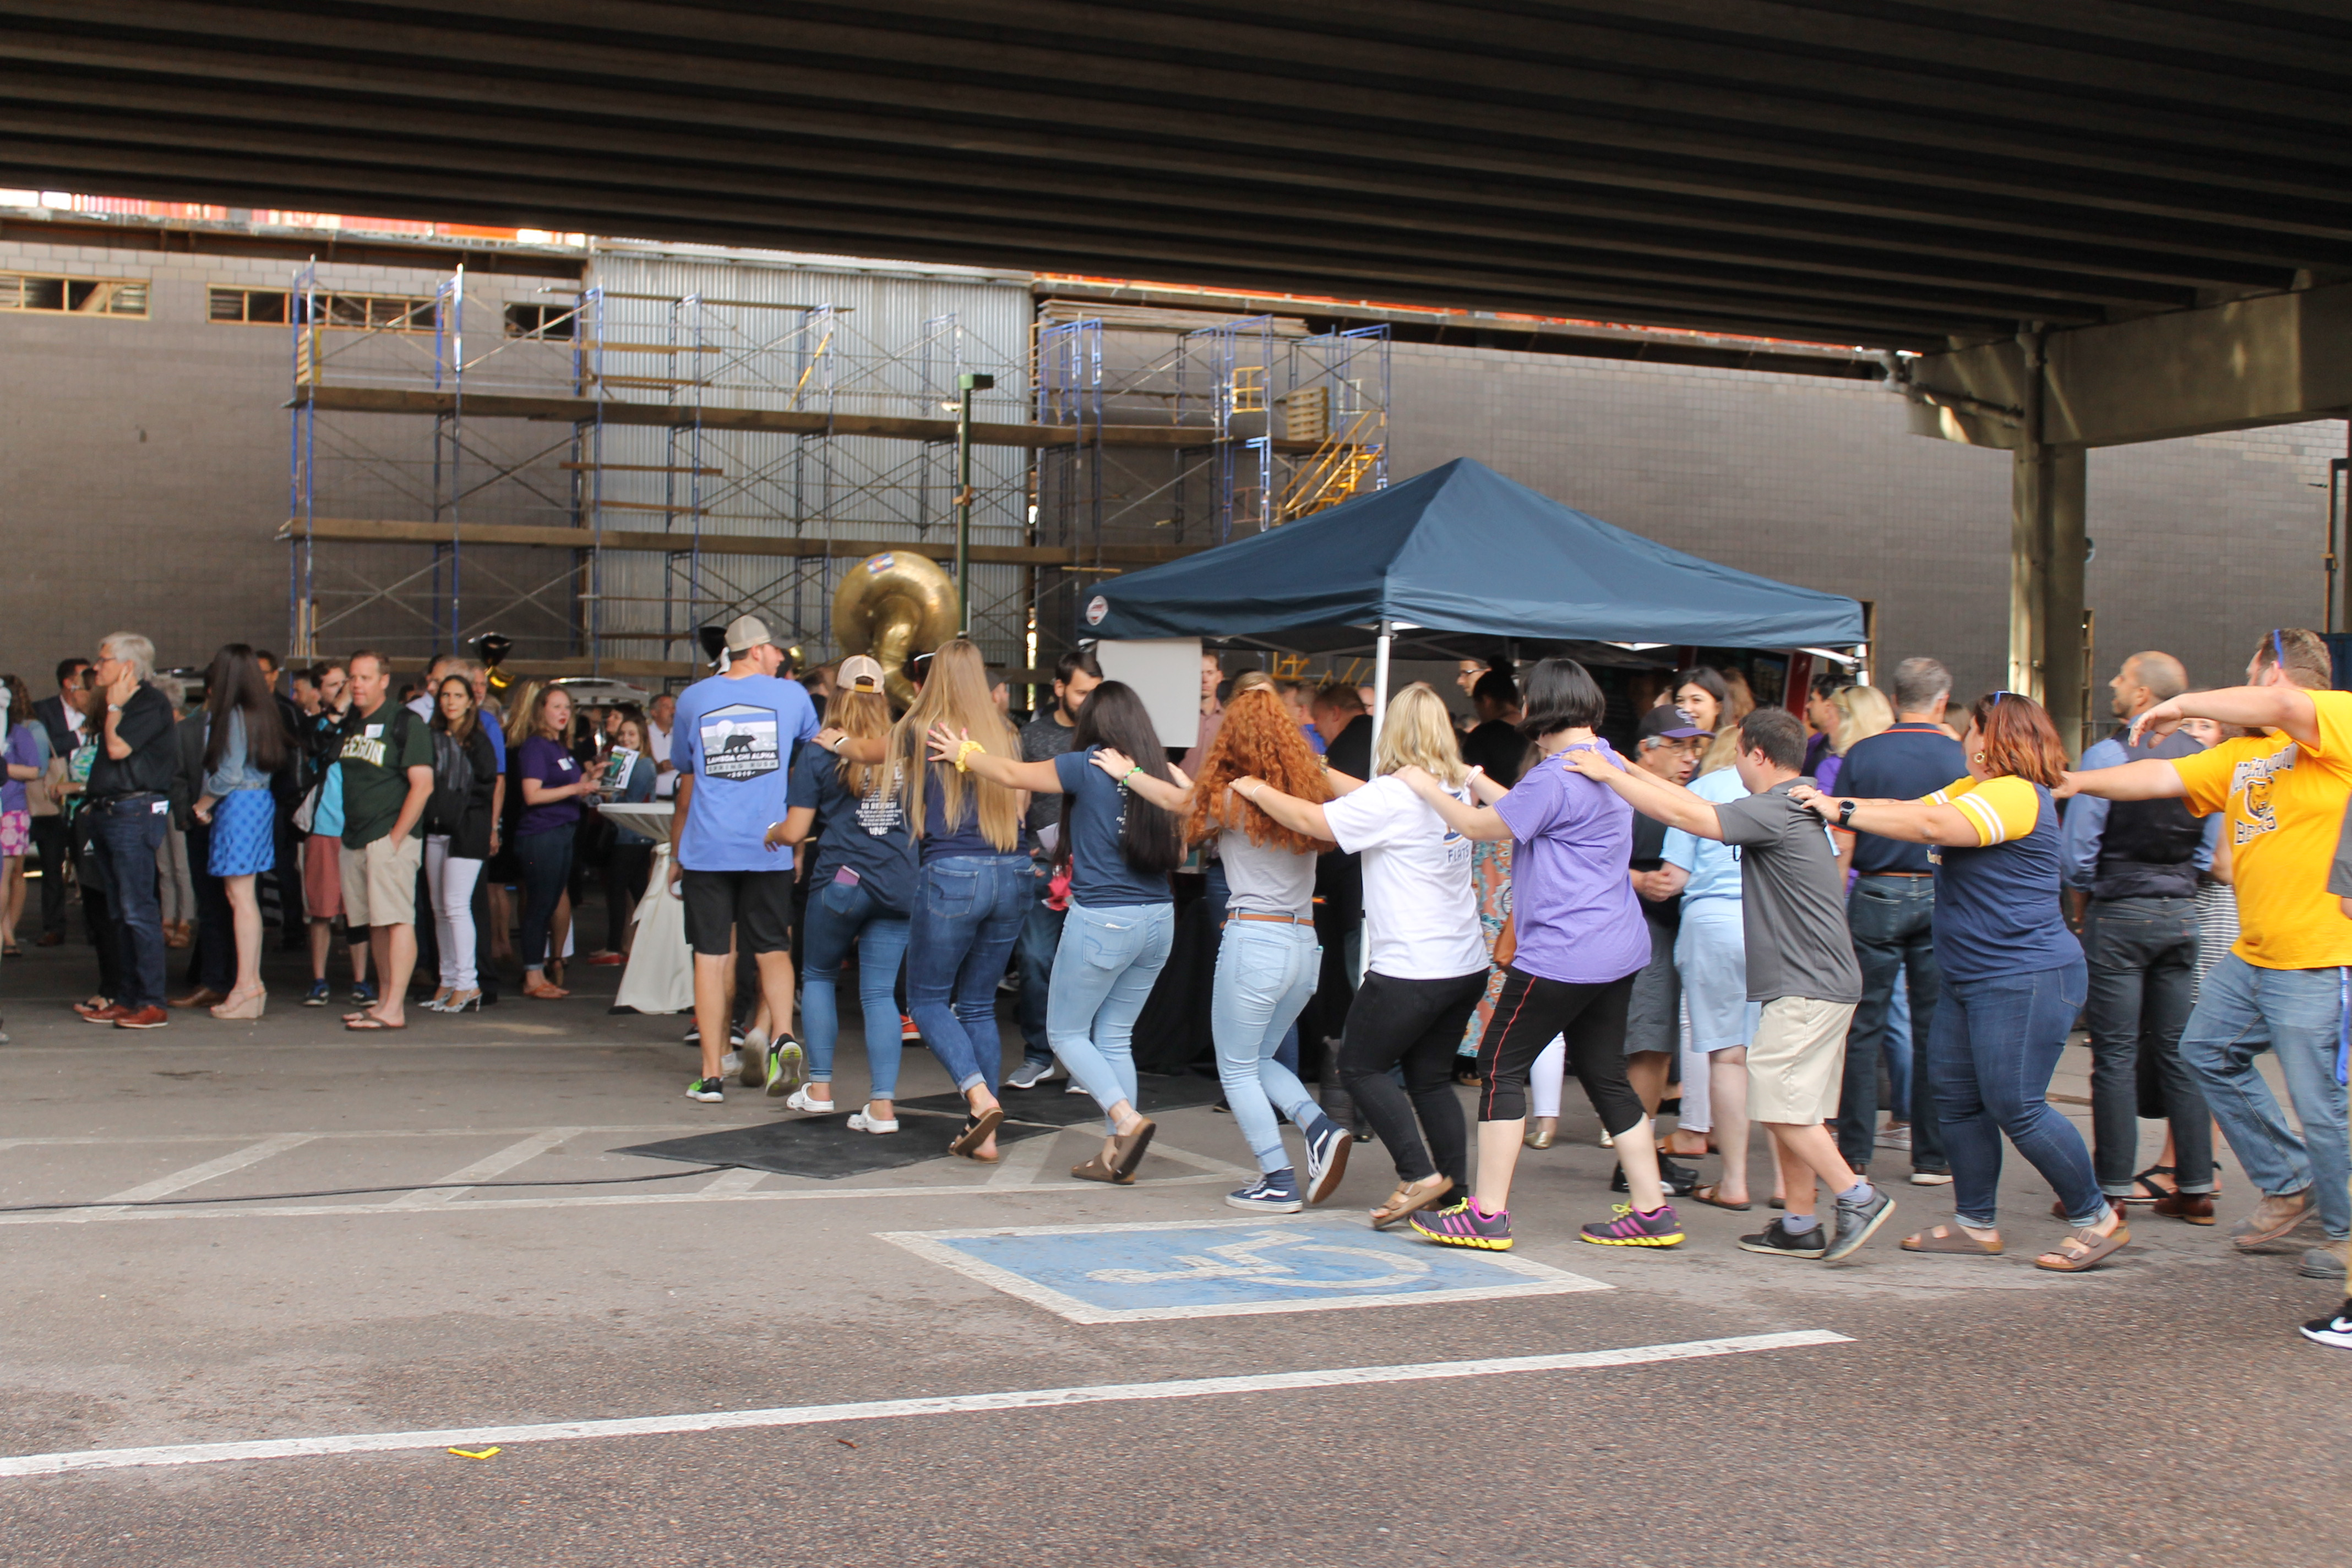 Group of people form a congo line in a parking lot